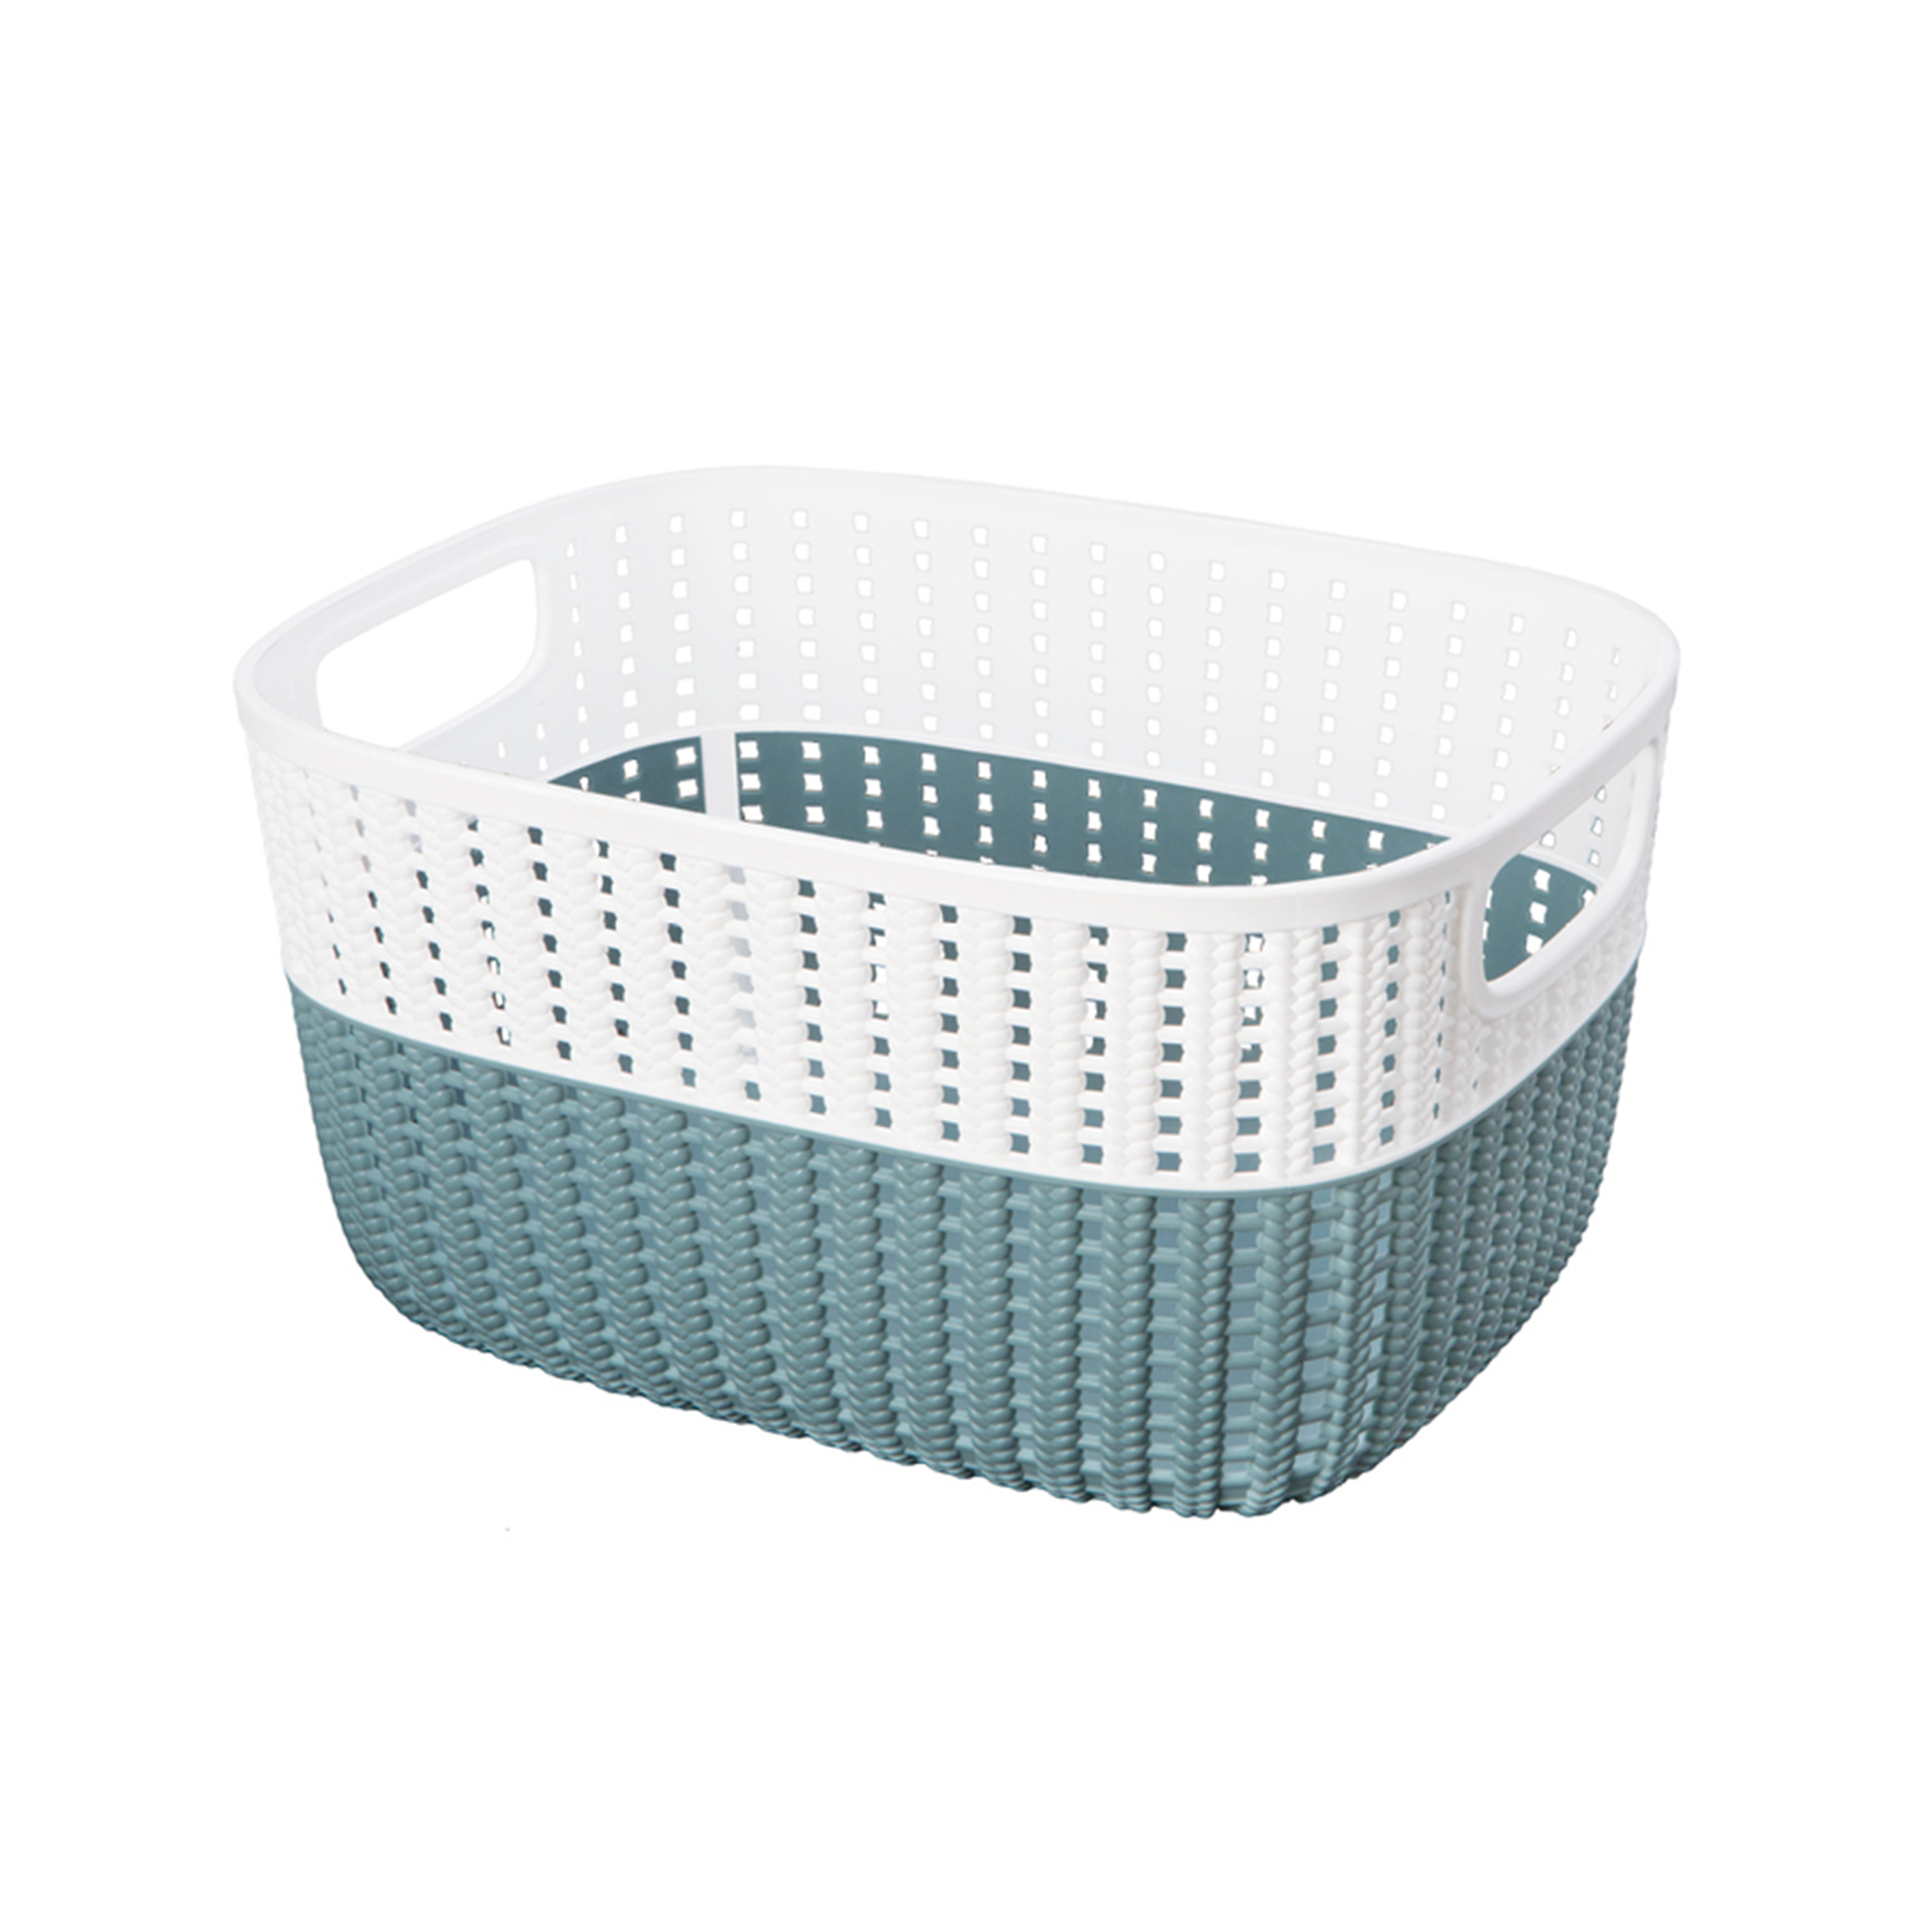 Simplify Sailor Knot Storage Tote with White Rim - Small (Dims: 9 X 7 X 5 Inch)